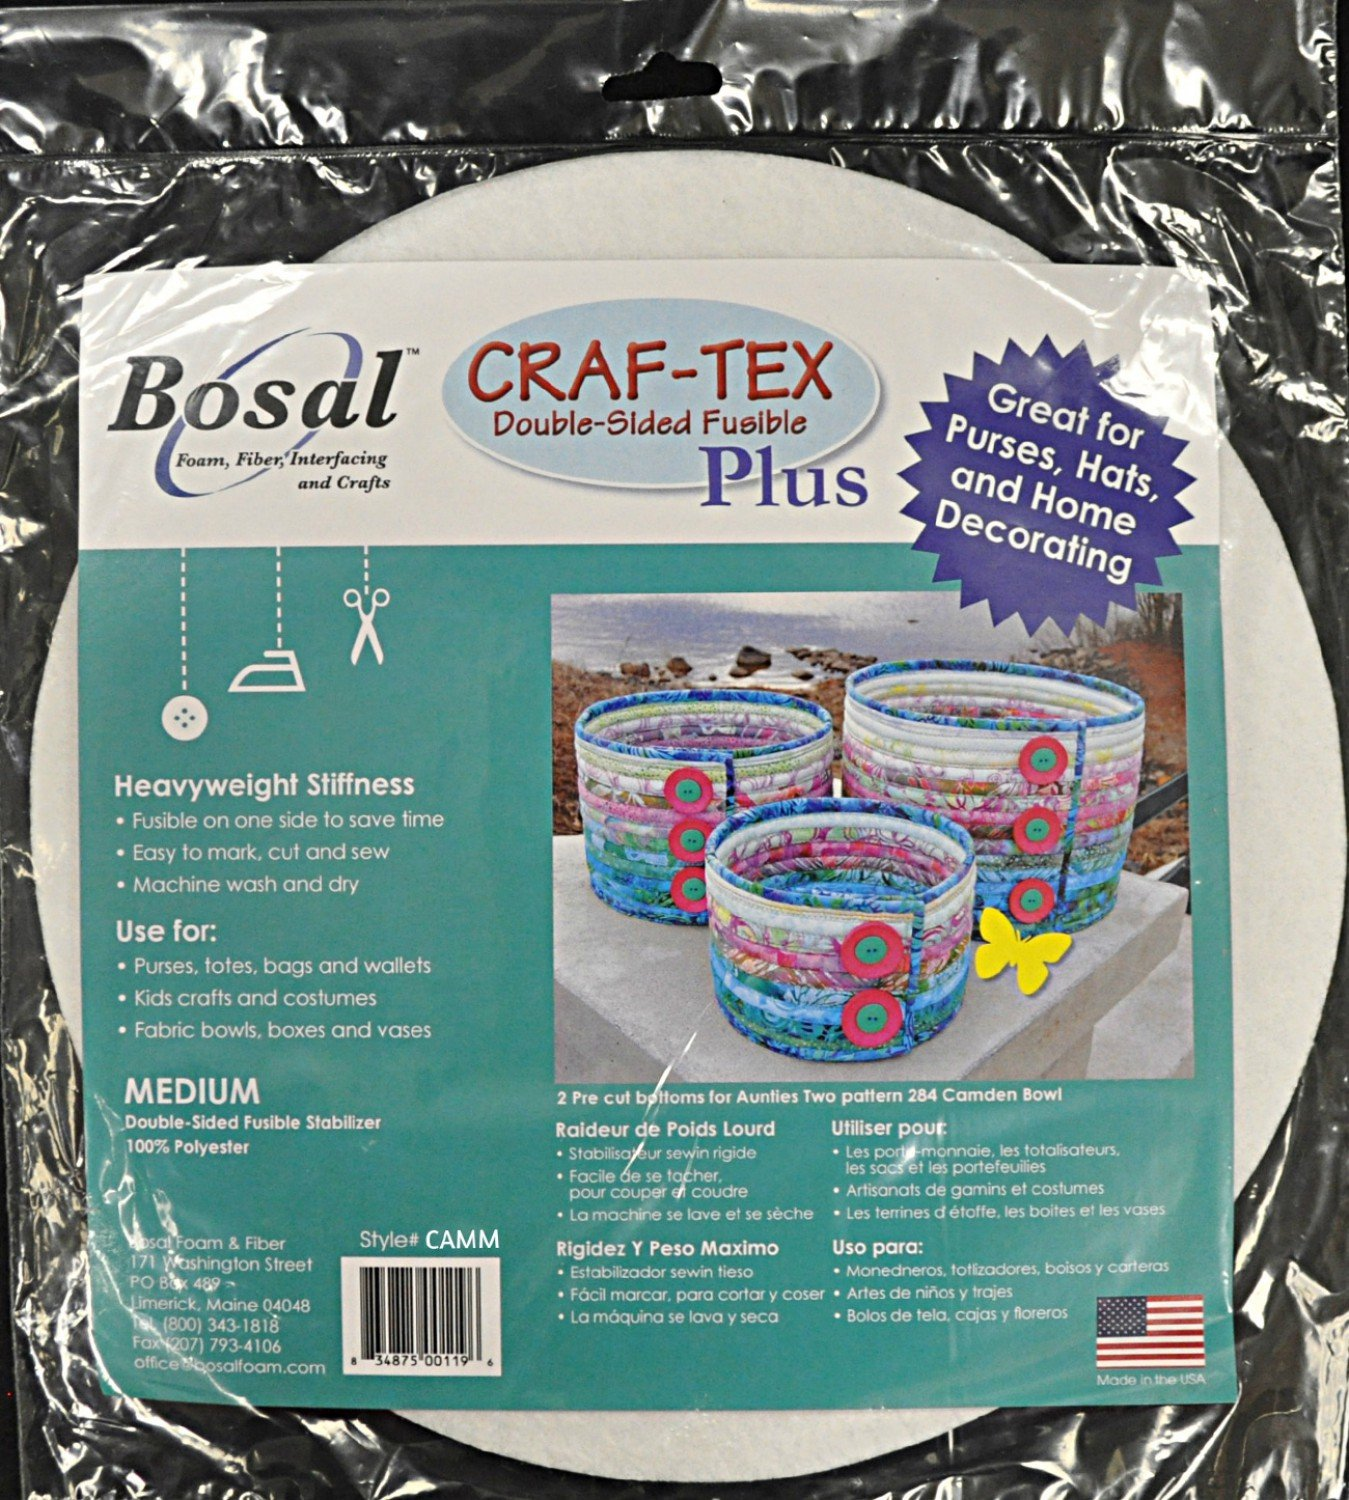 Bosal Craf-Tex Plus Camden Bowl Medium Double Sided Fusible Stabilizer